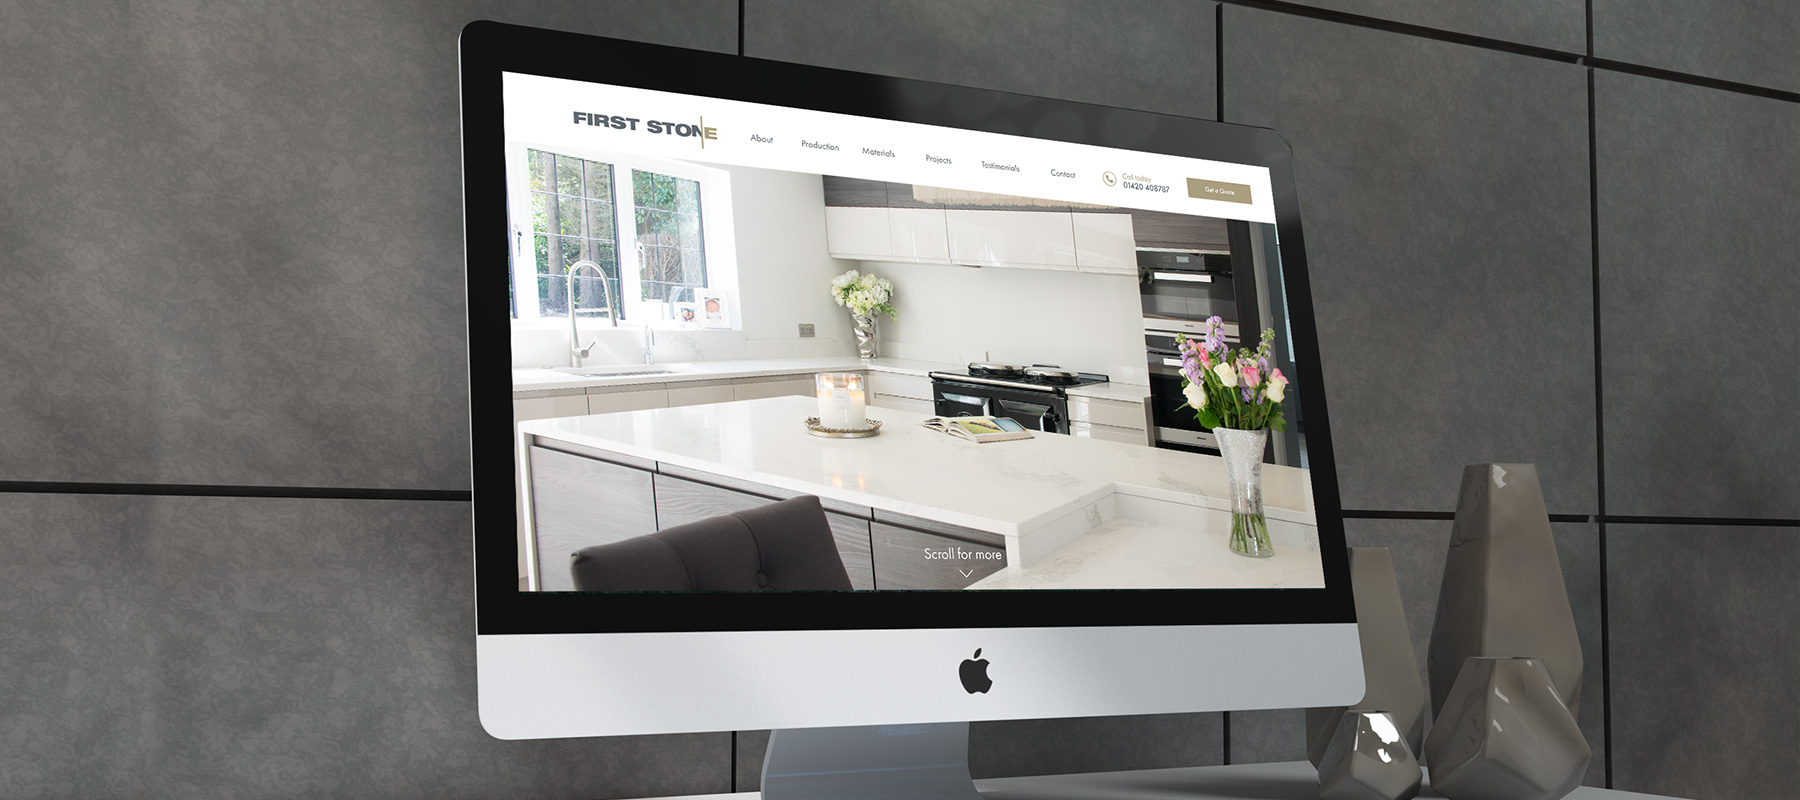 A iMac showing the homepage of First Stone Worktops